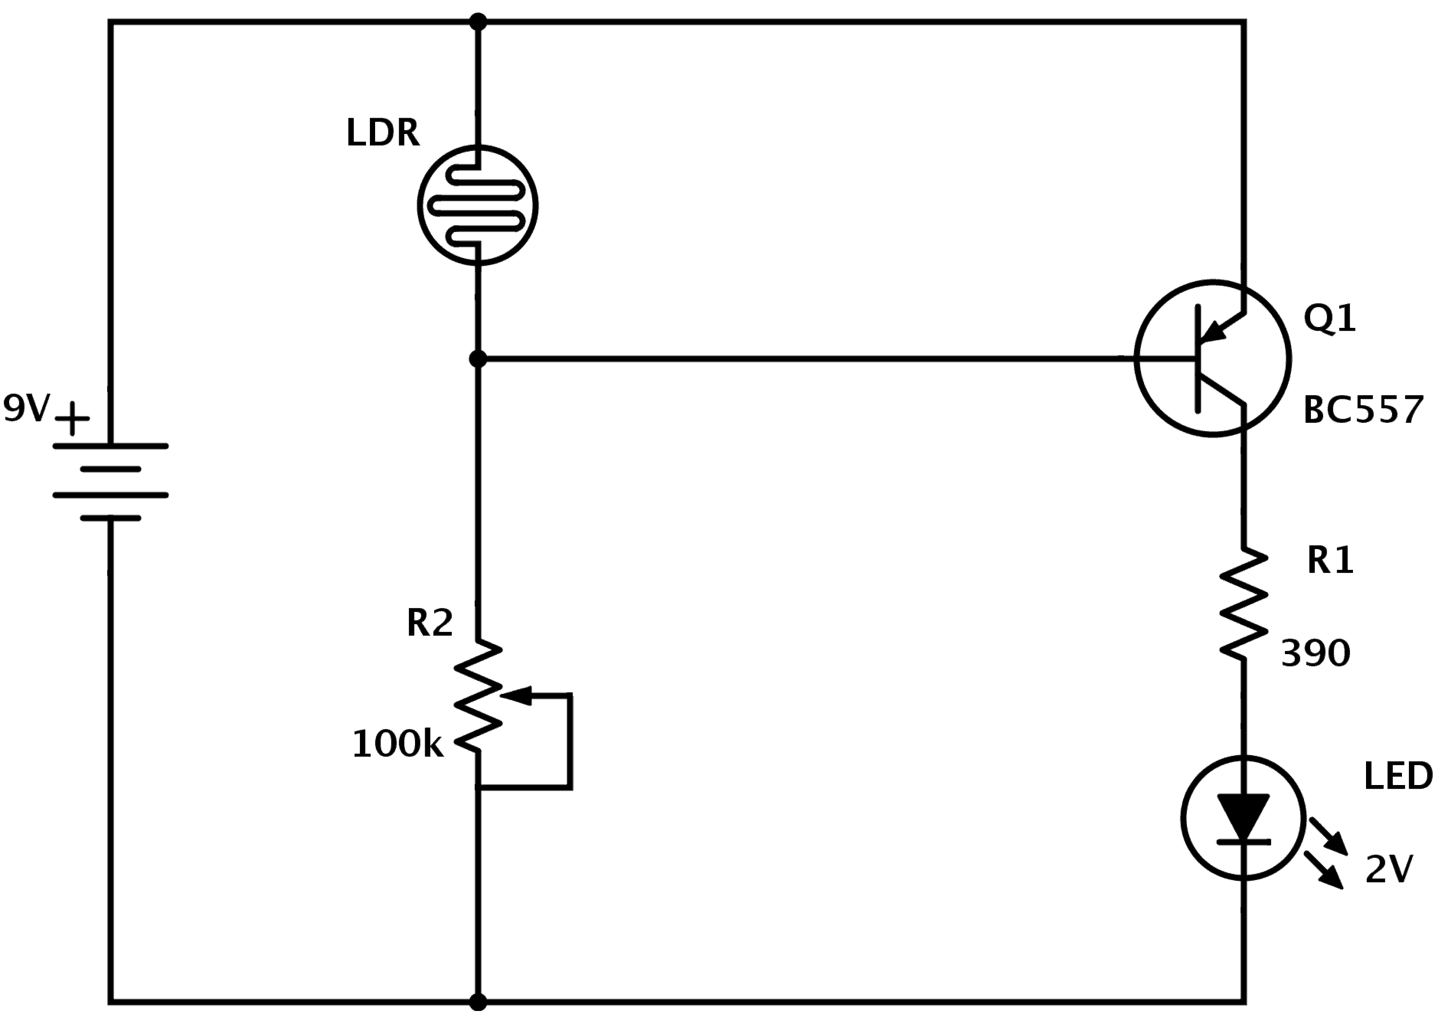 Ldr Circuit Diagram Build Electronic Circuits To Draw And Wiring Common Symbols On With Pnp Transistor Dark Detector